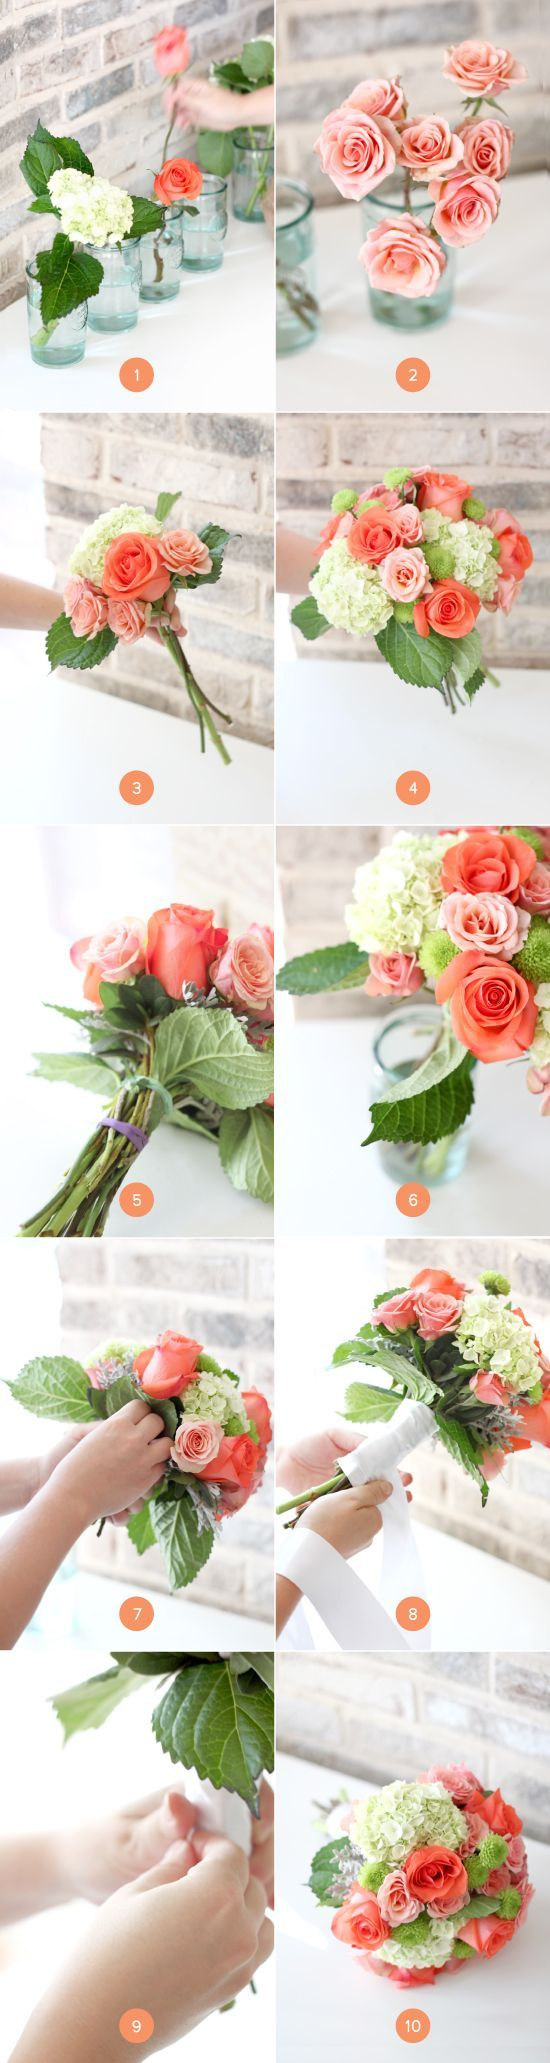 DIY Grocery Store Bridal Bouquet::